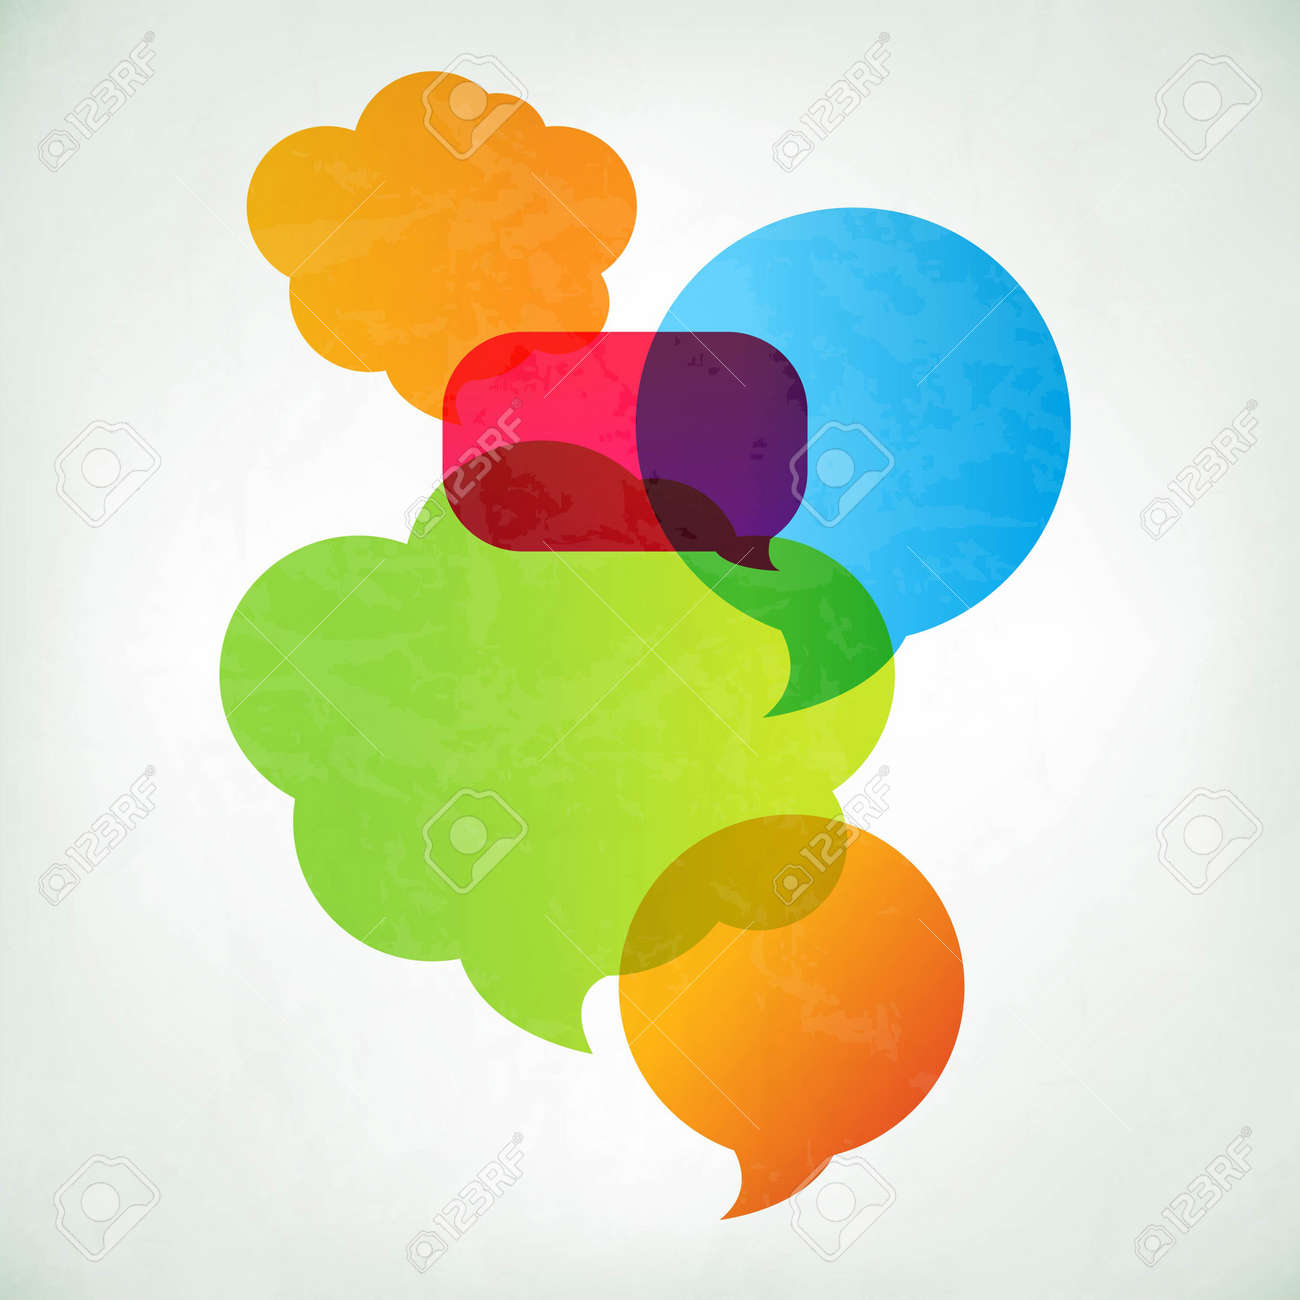 Colorful Vector Speech Bubbles With Gradient Mesh, Vector Illustration - 21902859